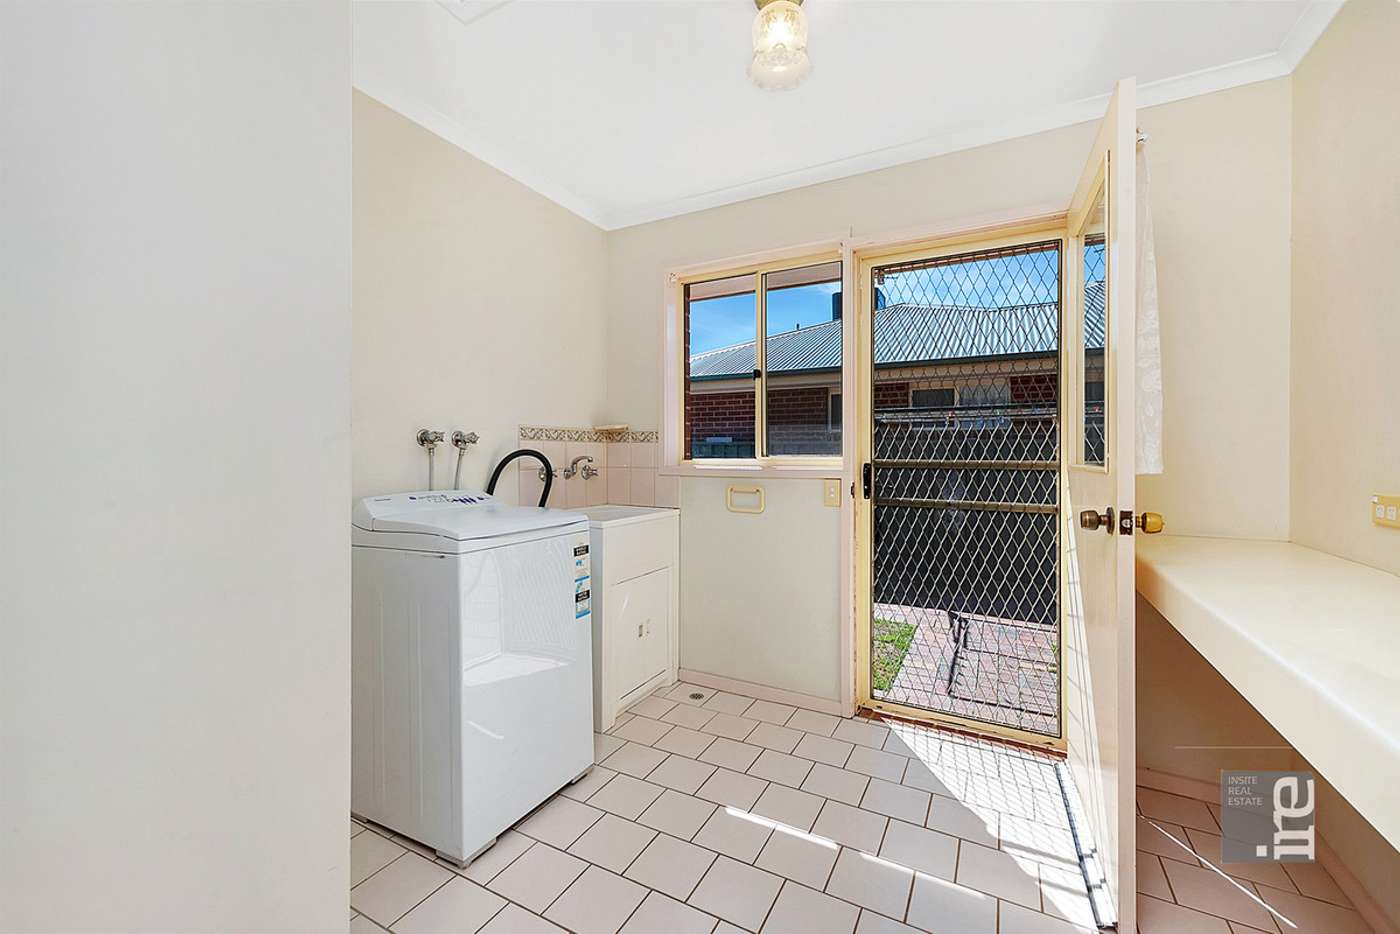 Sixth view of Homely unit listing, 1/72 College Street, Wangaratta VIC 3677